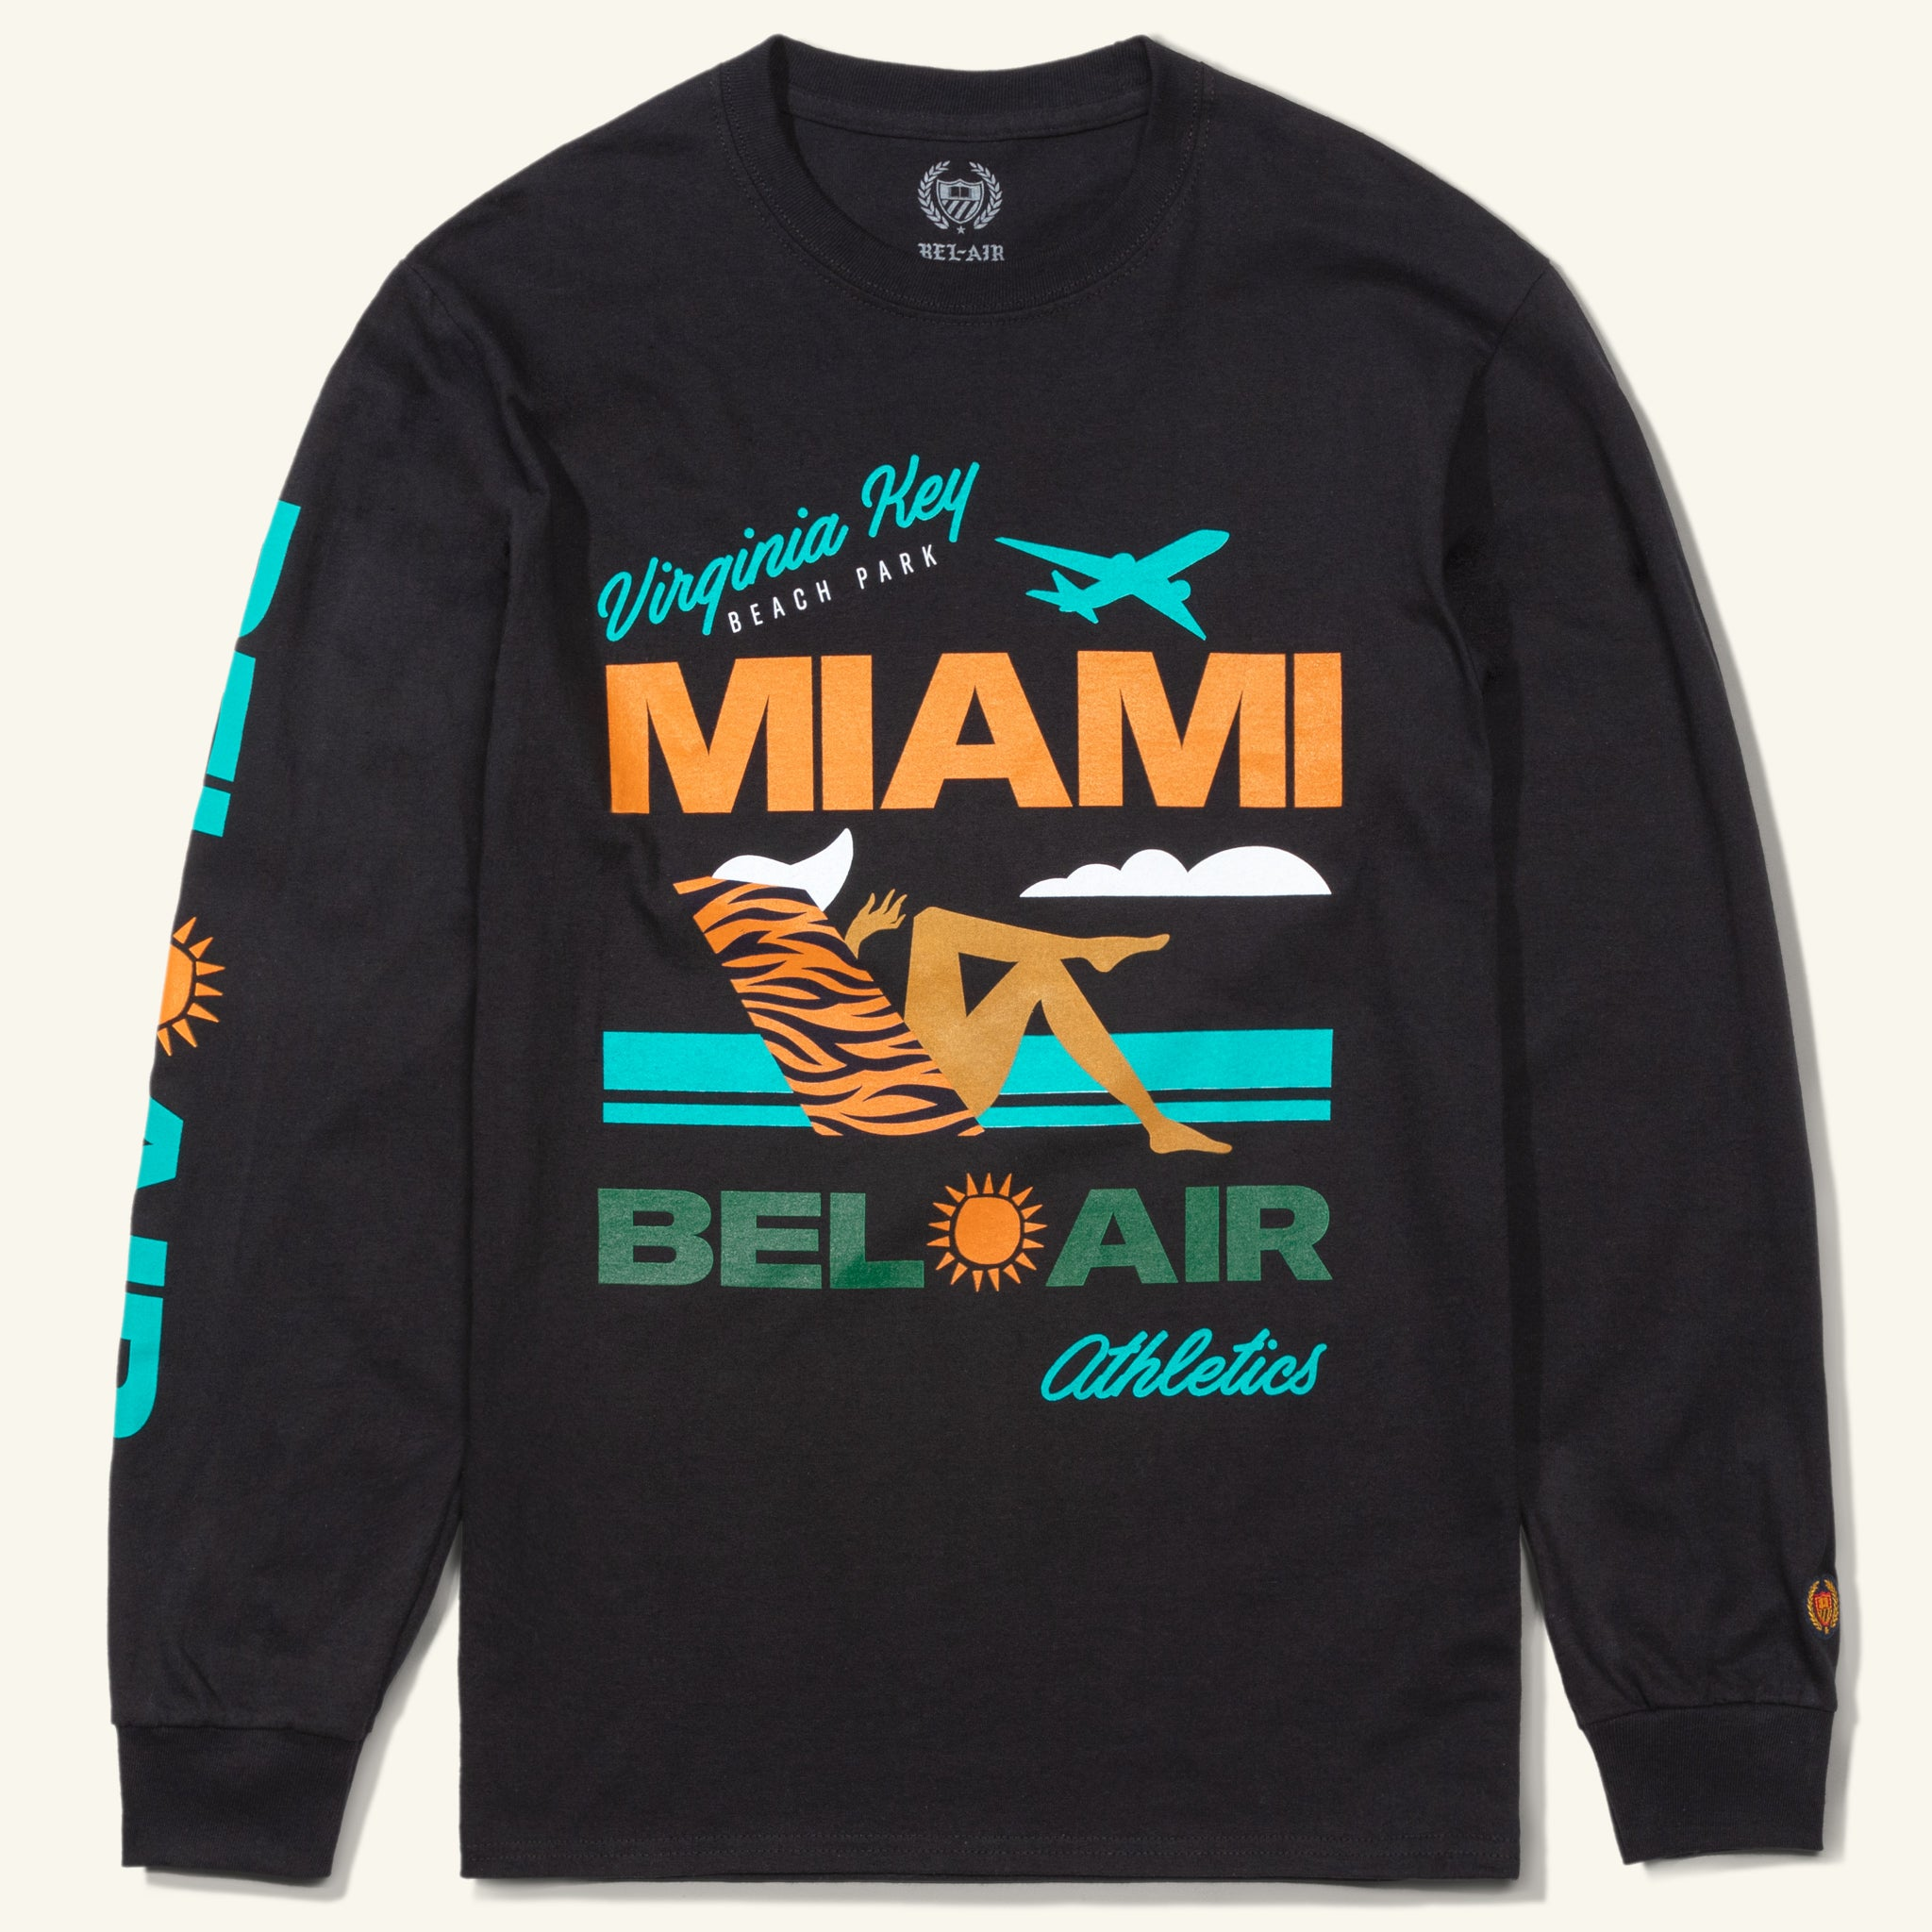 Virginia Key Beach Long Sleeve Tee, Black